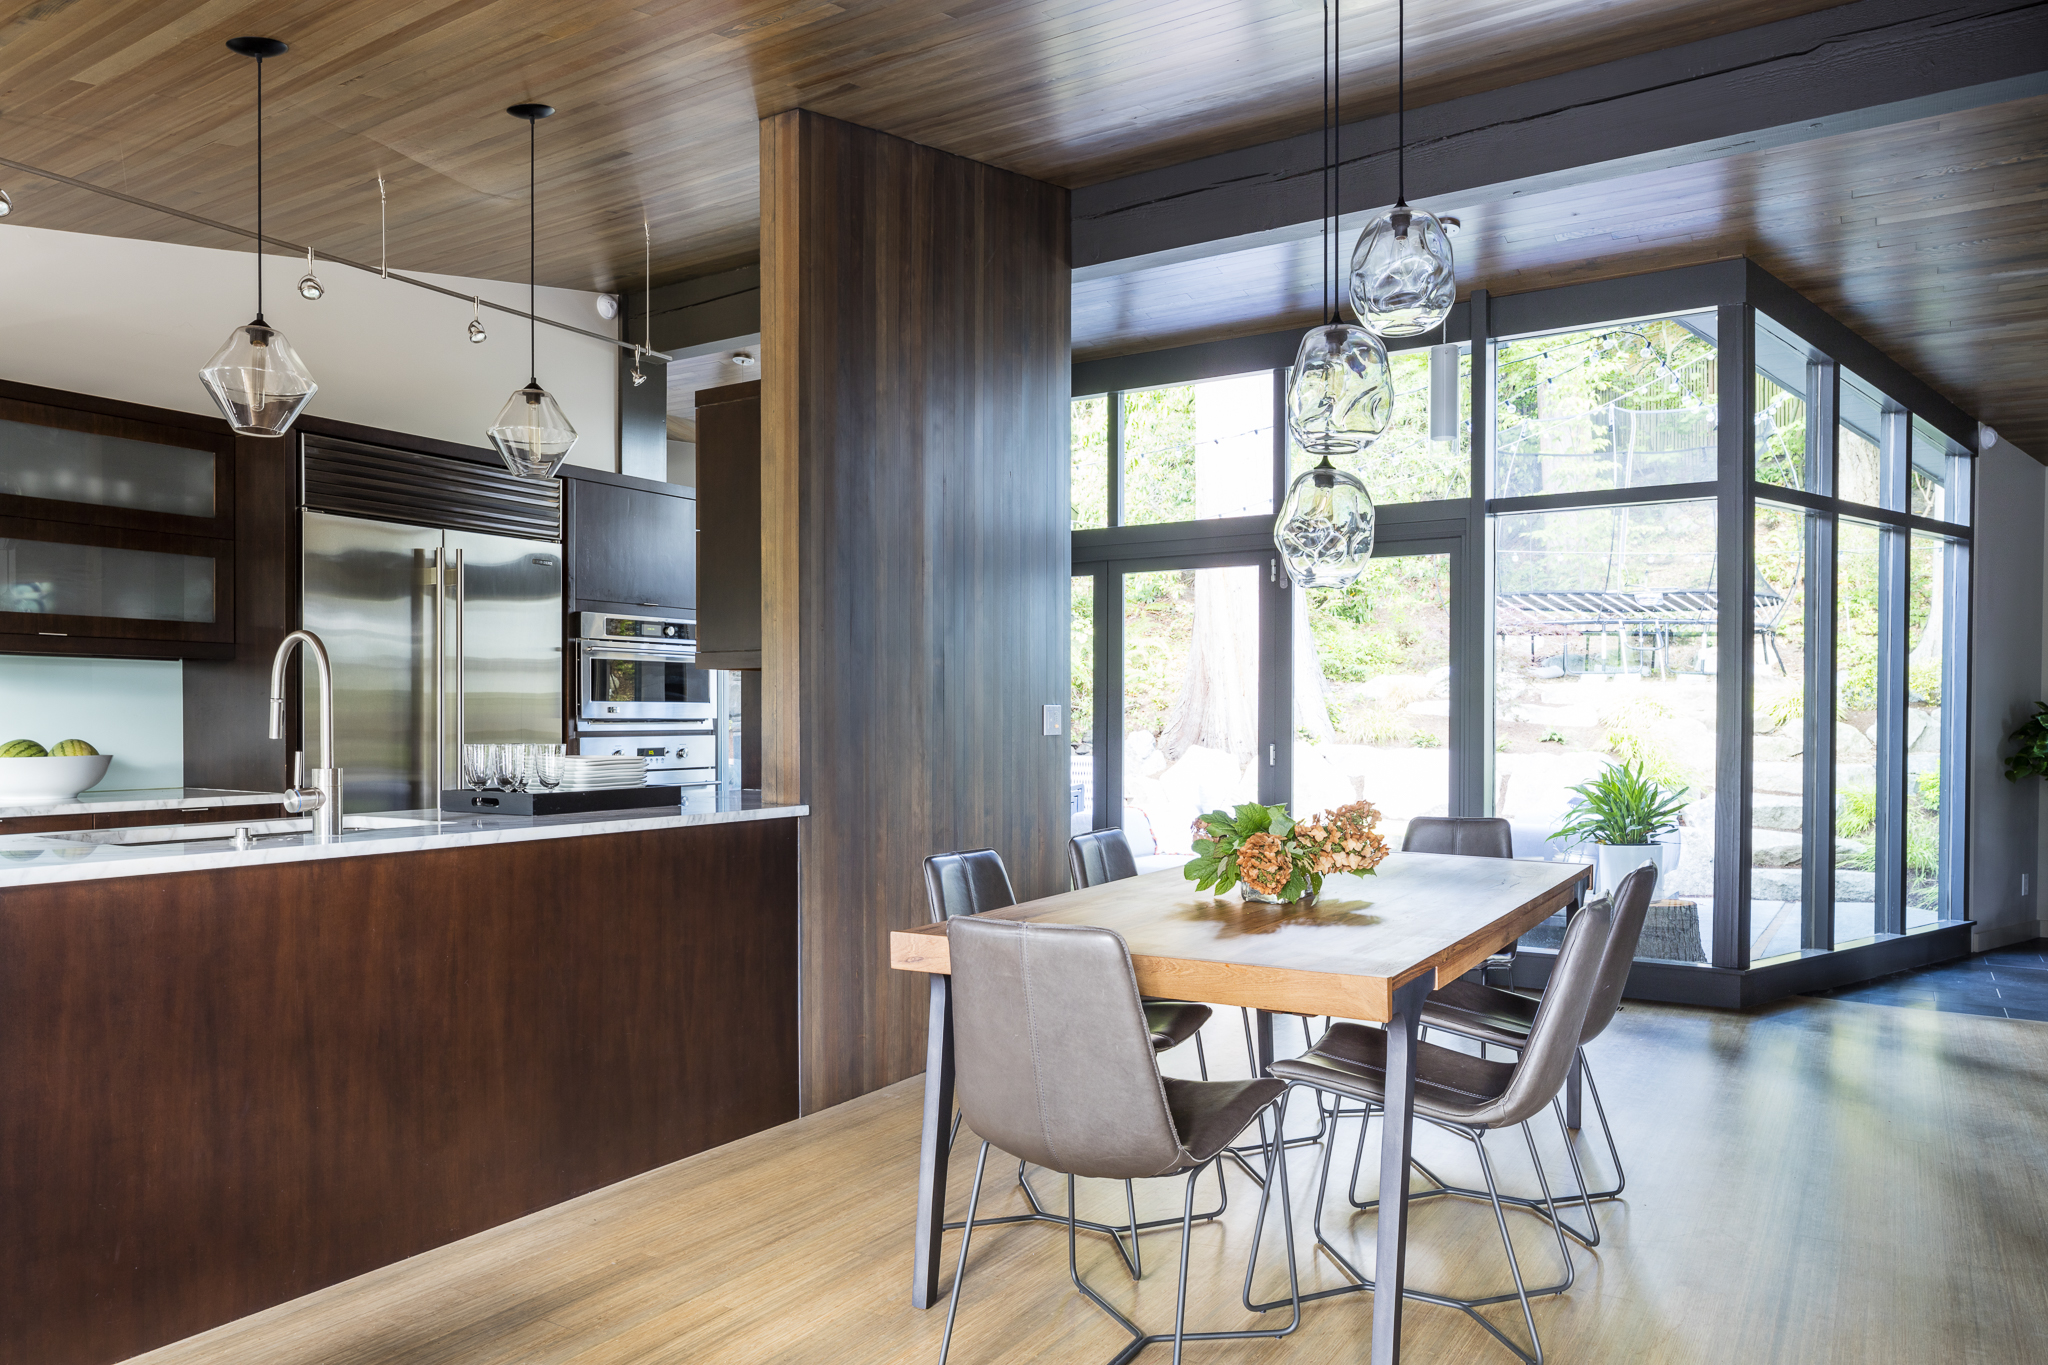 paul-moon-design-windermere-contemporary-dining-kitchen.jpg